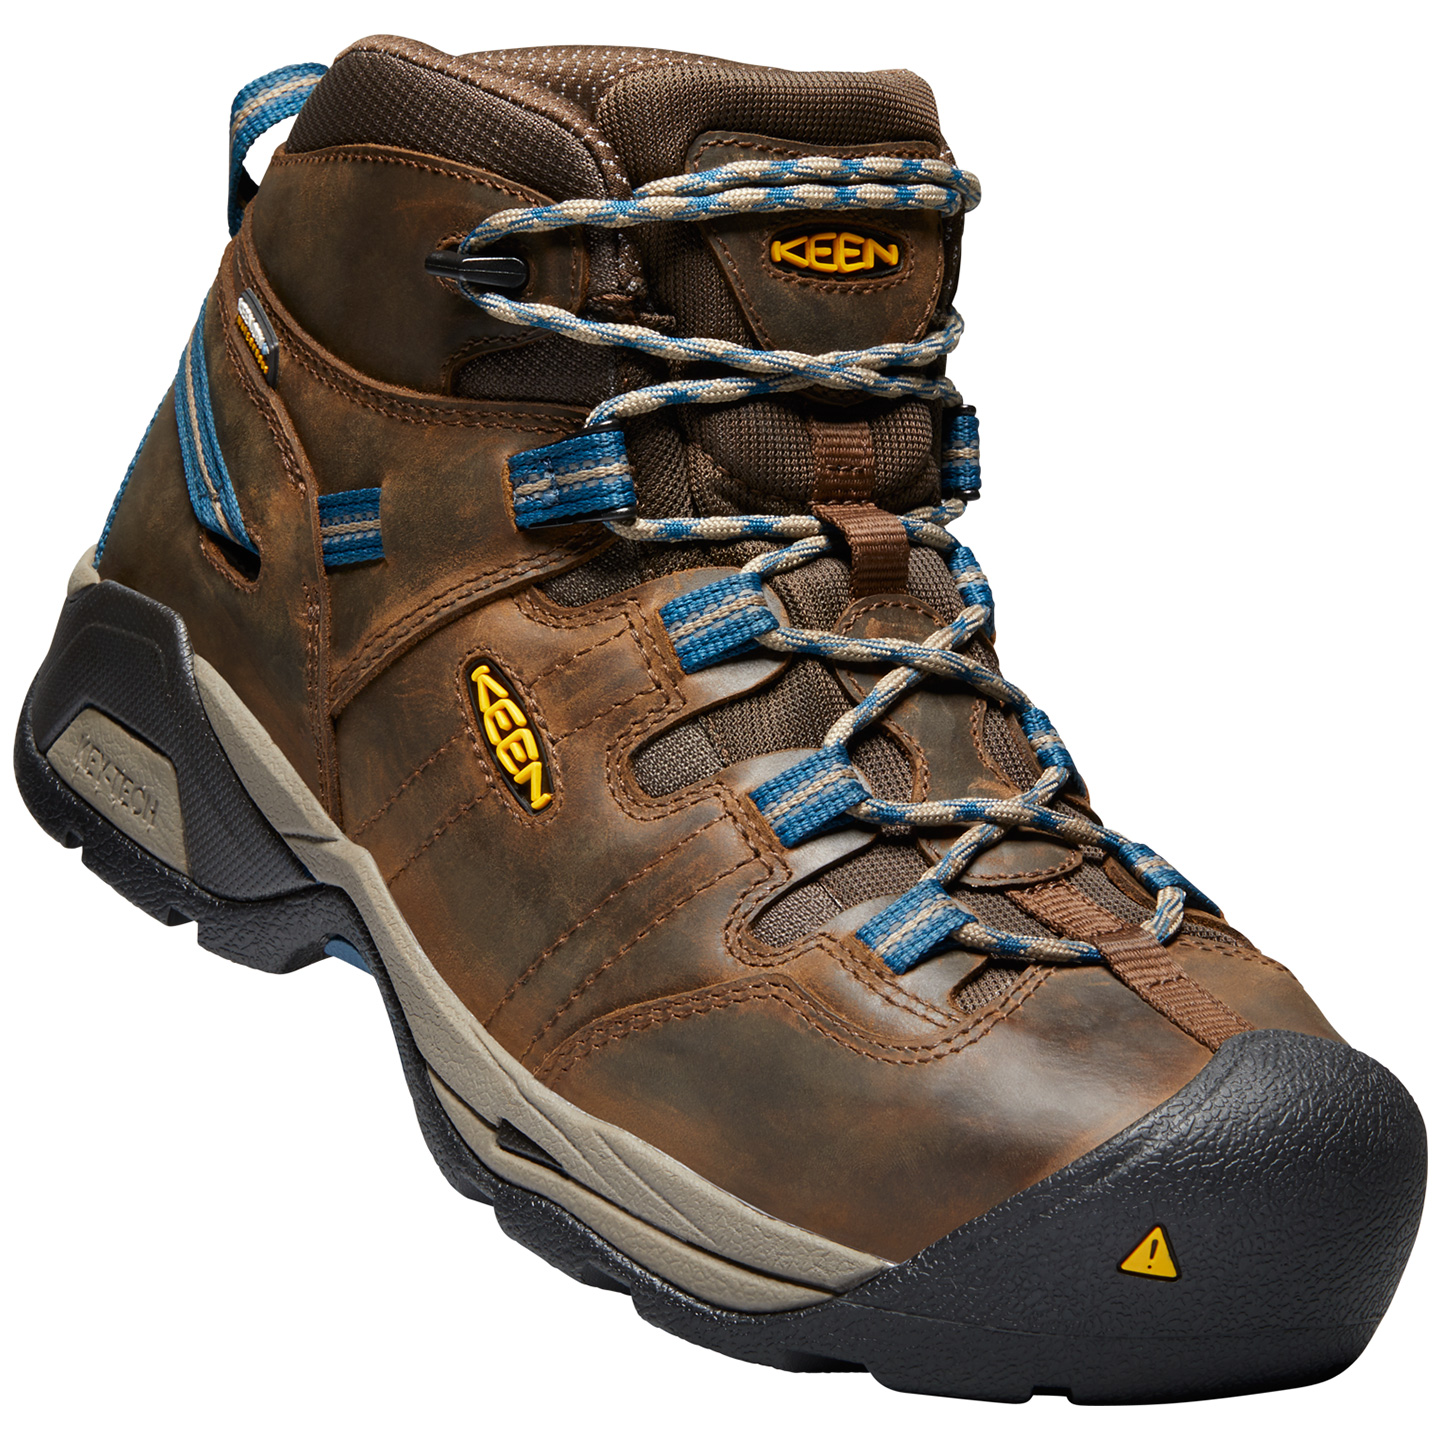 2db992bdd2 KEEN Utility® Detroit XT Men's Steel Toe Men's Work HikerKEEN Utility®  Detroit XT Men's Steel Toe Men's Work Hiker,